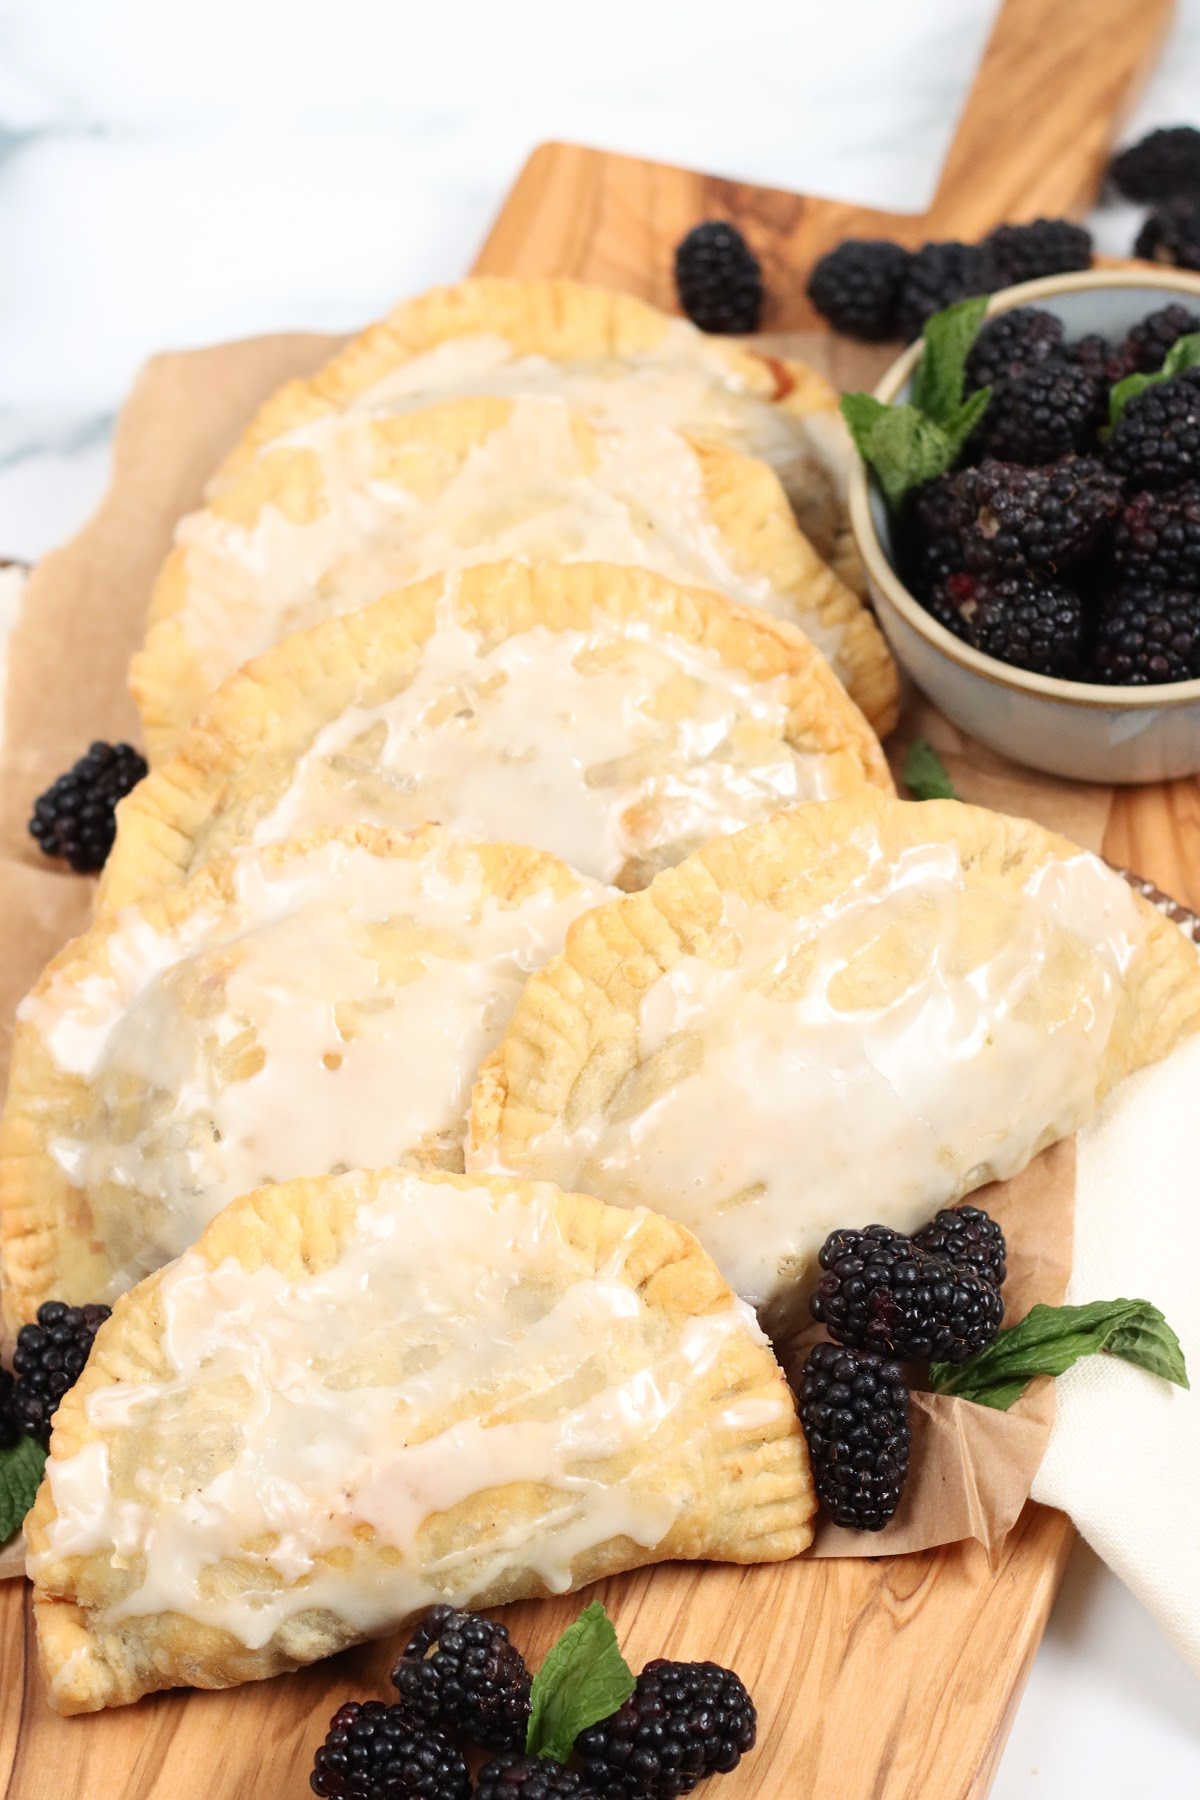 Blackberry hand pies and loose fresh blackberries on wooden cutting board.